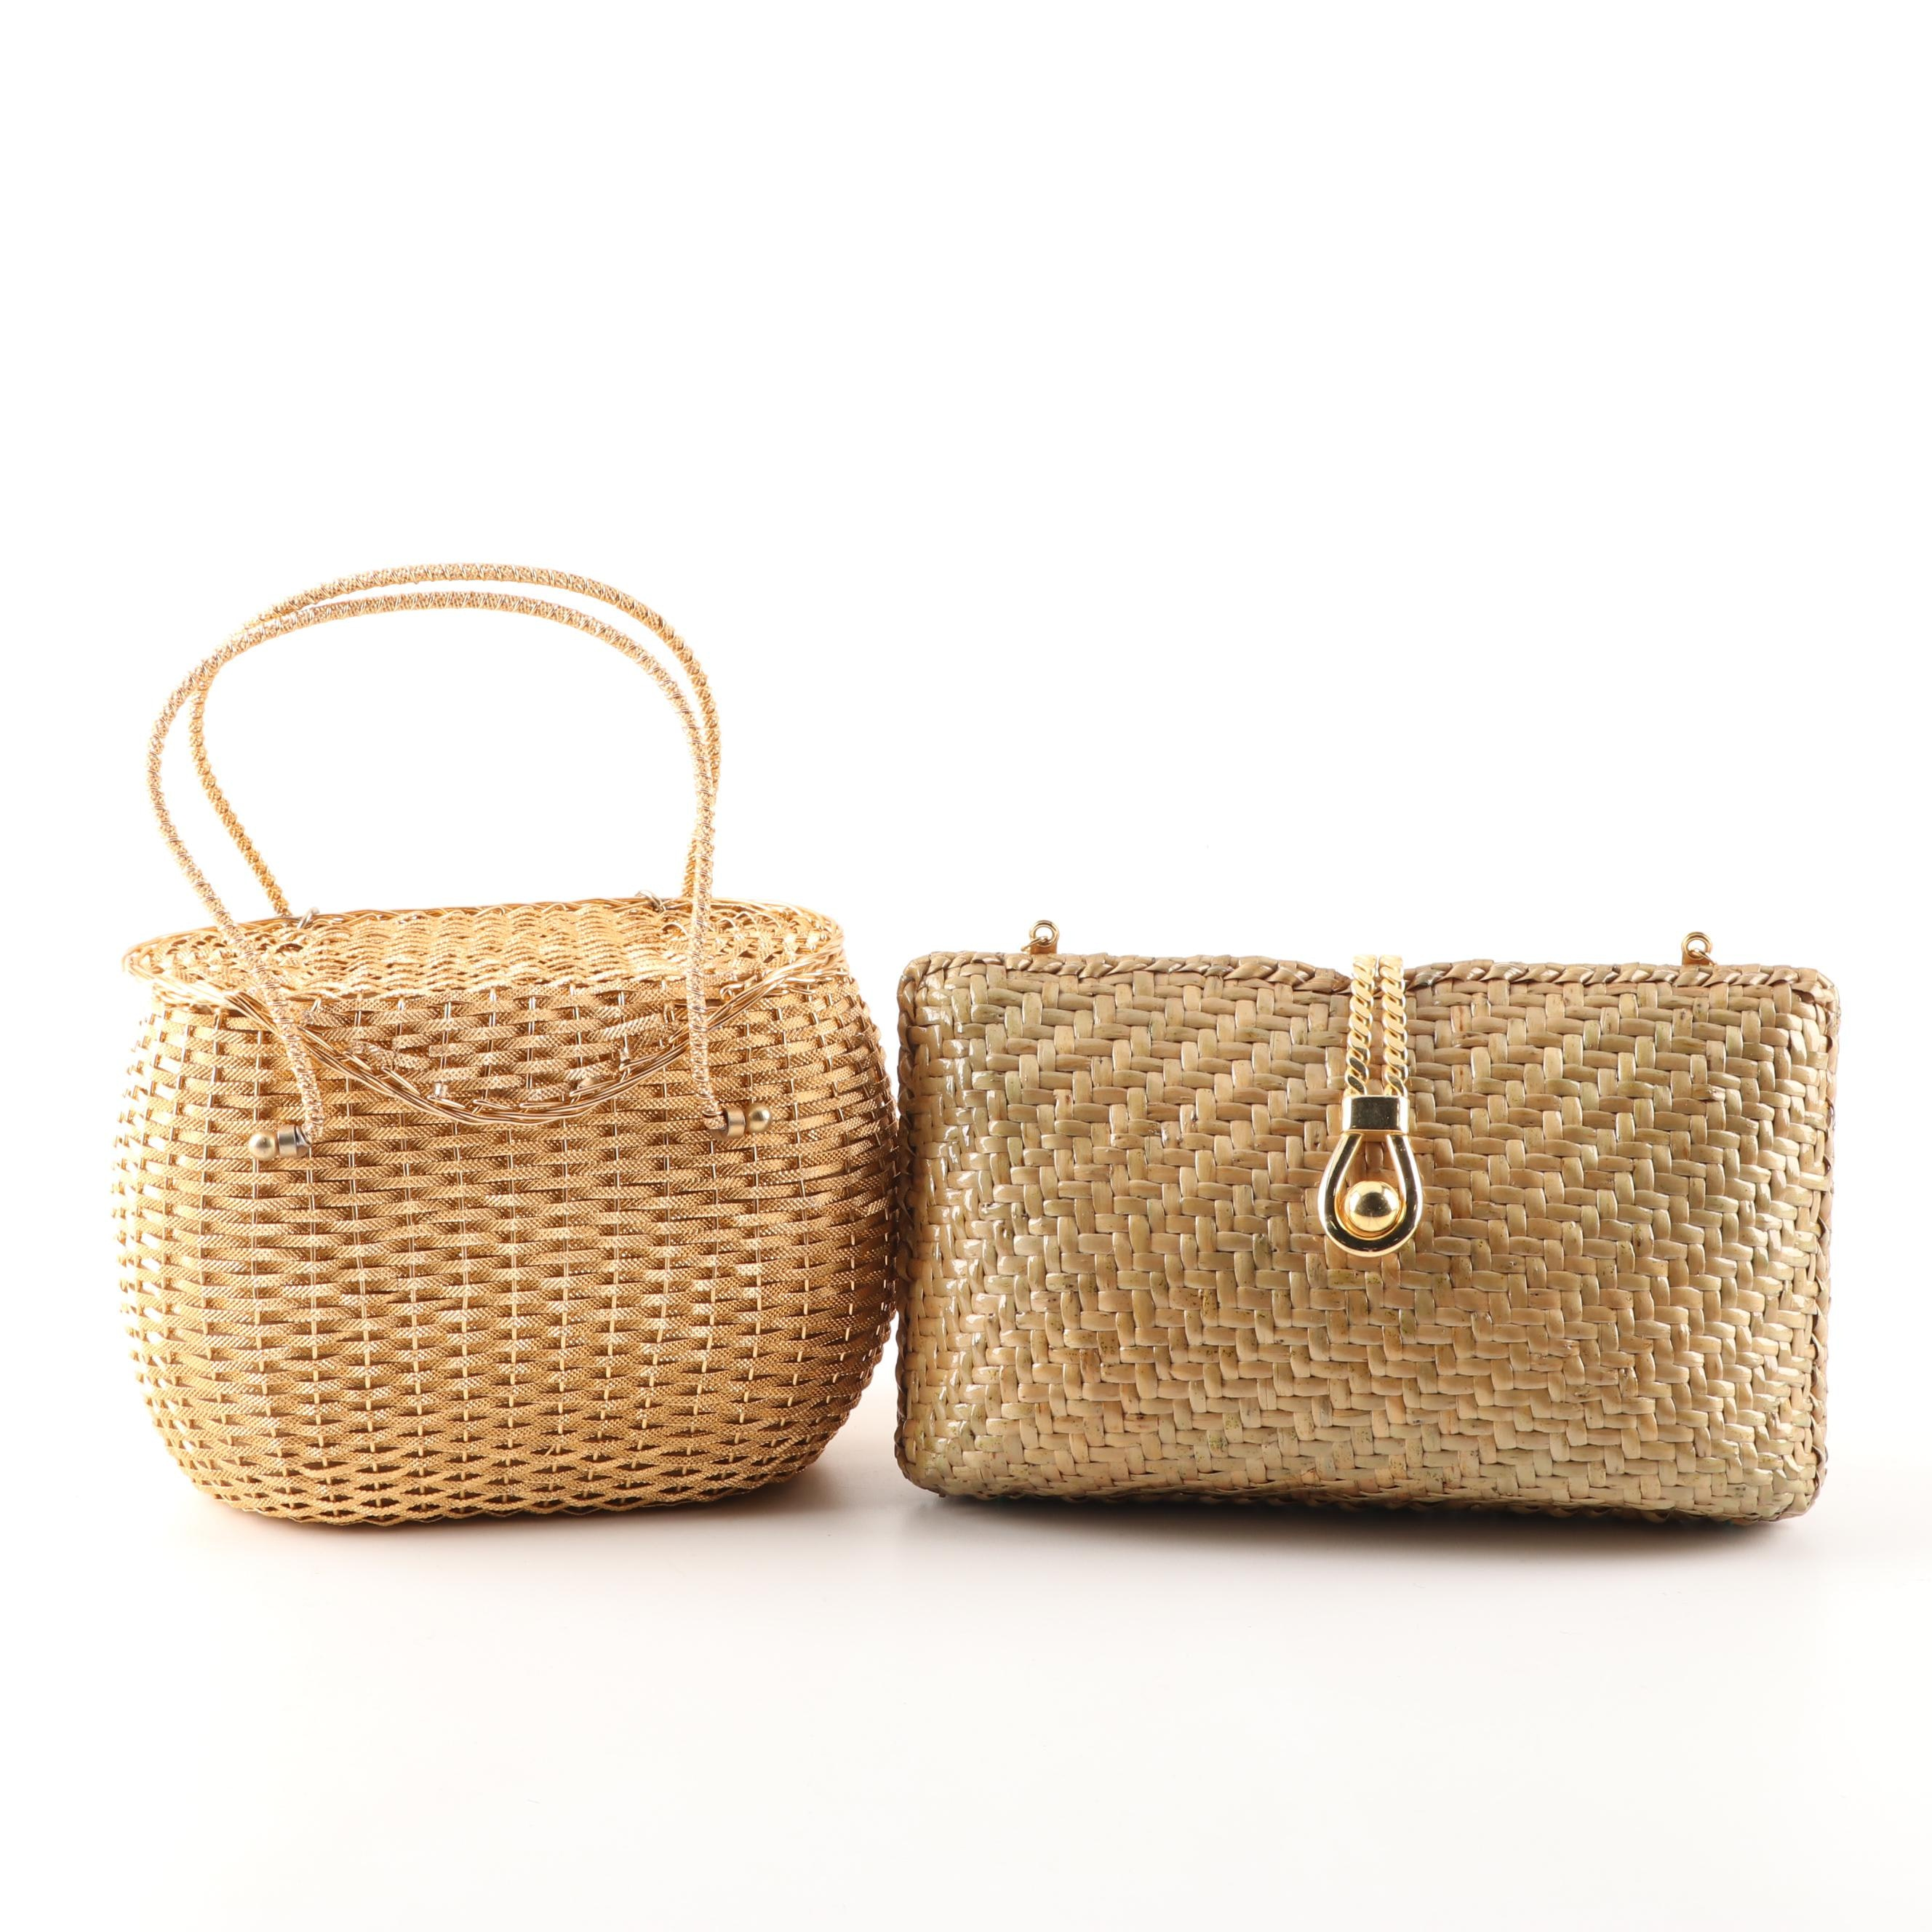 Walborg Woven Clutch and Koret Box Purse, 1960s Vintage